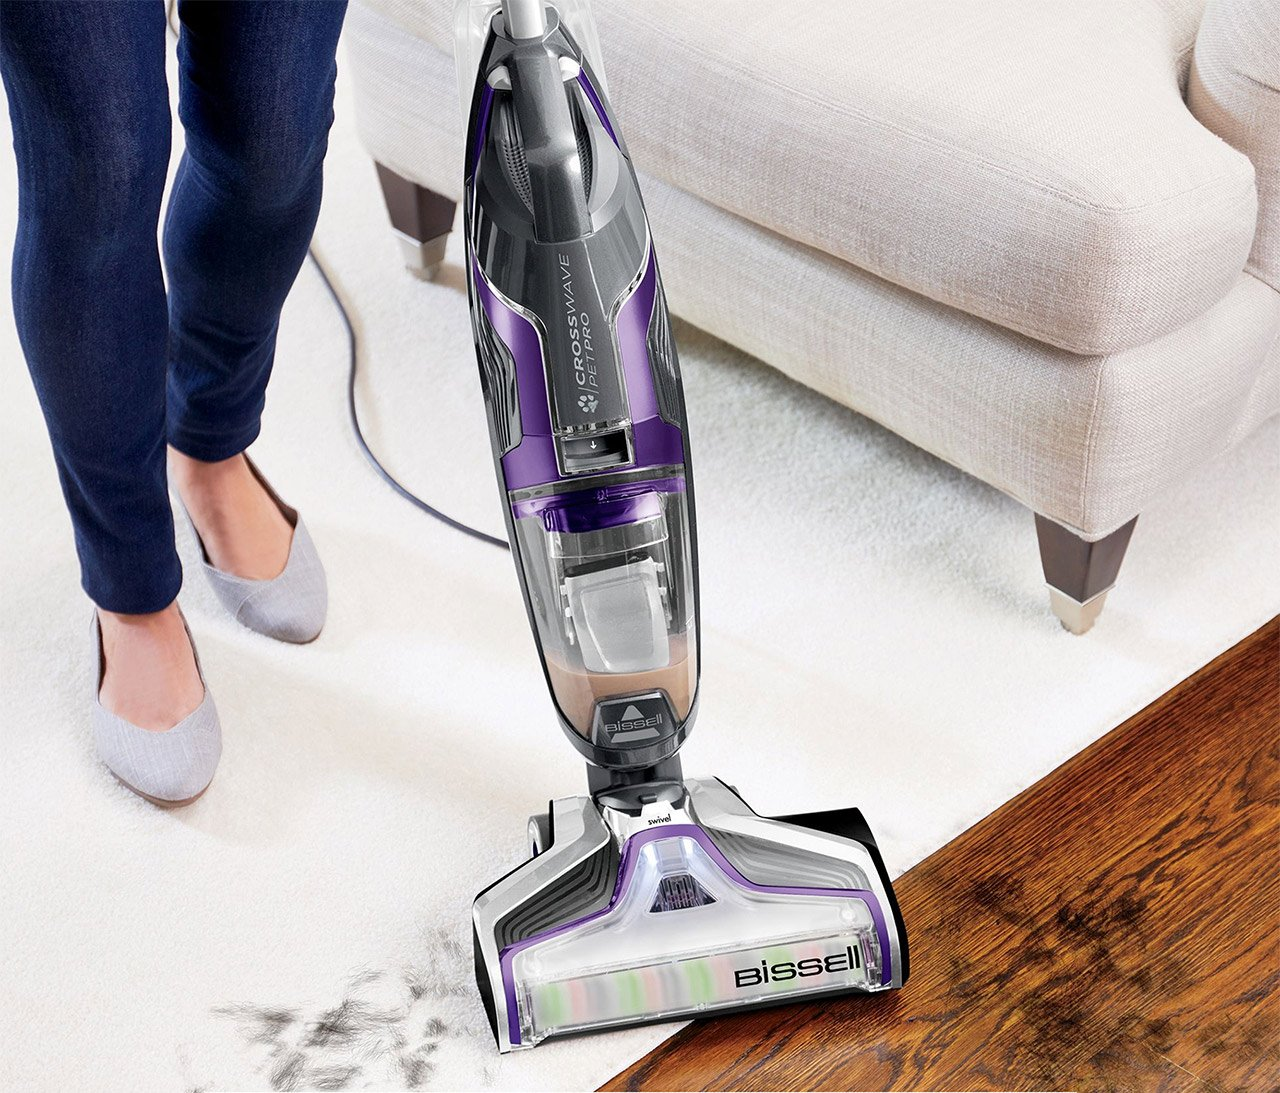 Bed Bath And Beyond Up To 50 Off Select Vacuums Spring